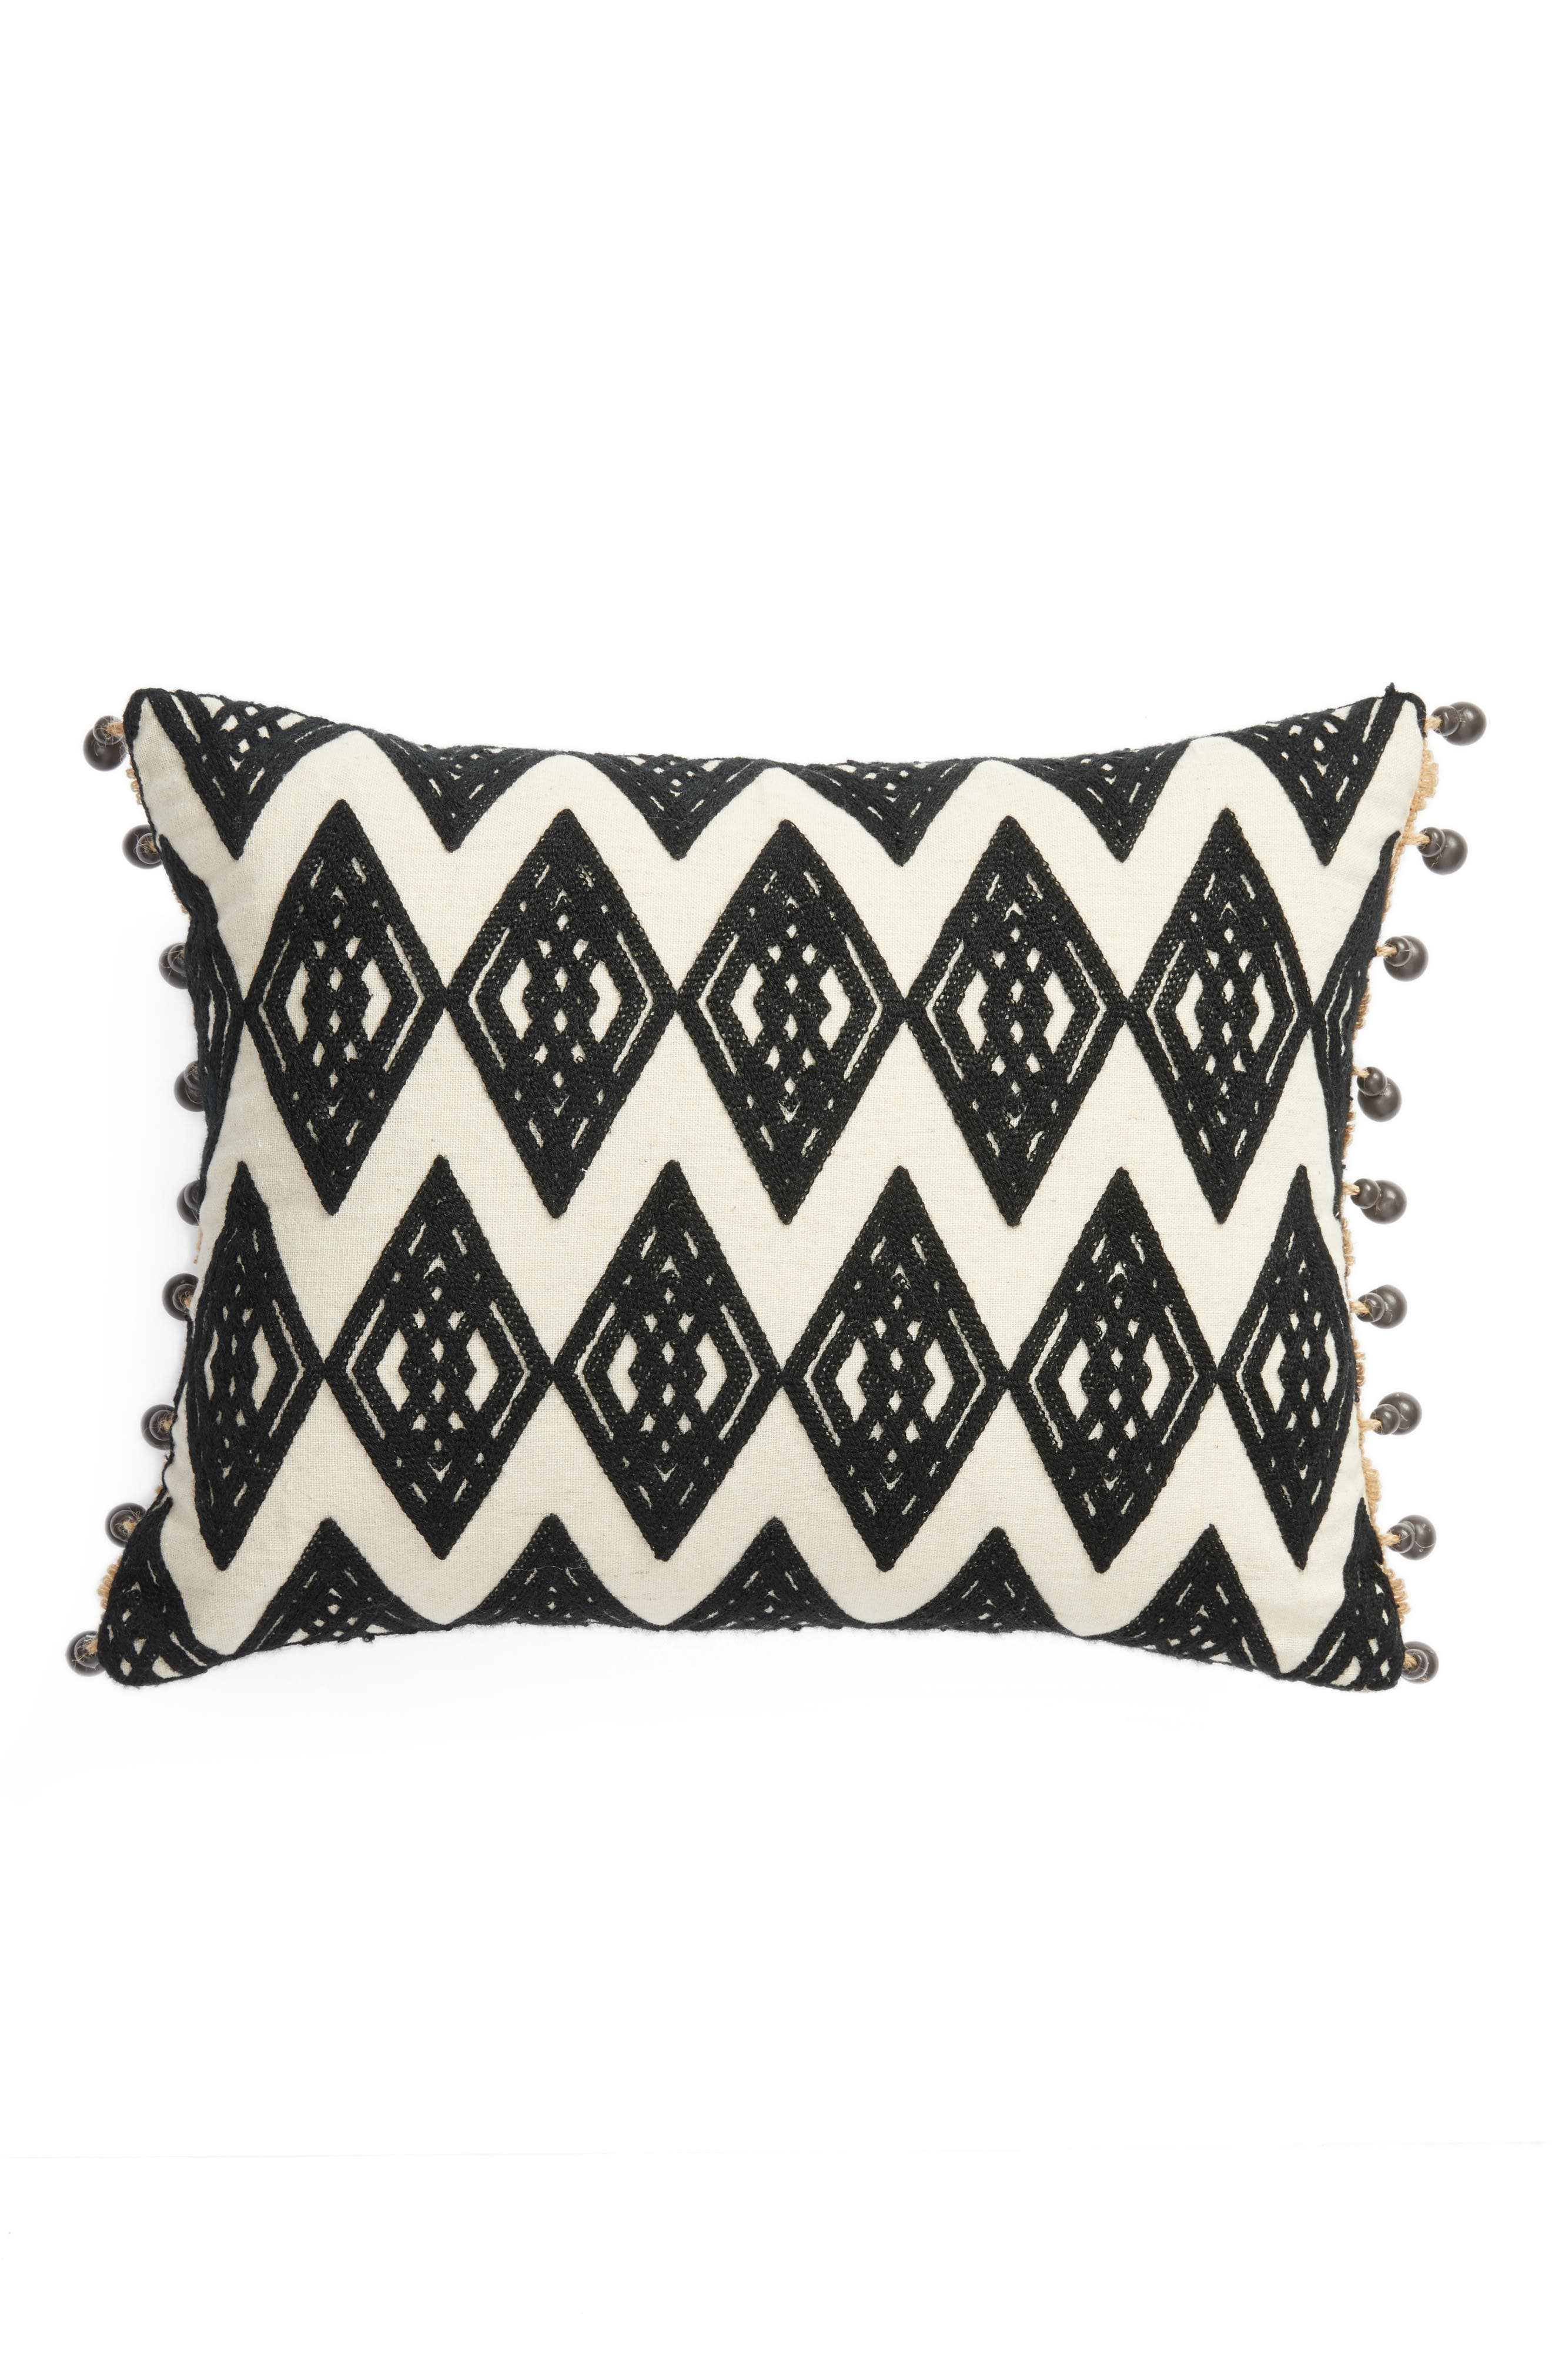 Moroccan Crewel Embroidered Pillow,                             Main thumbnail 1, color,                             010